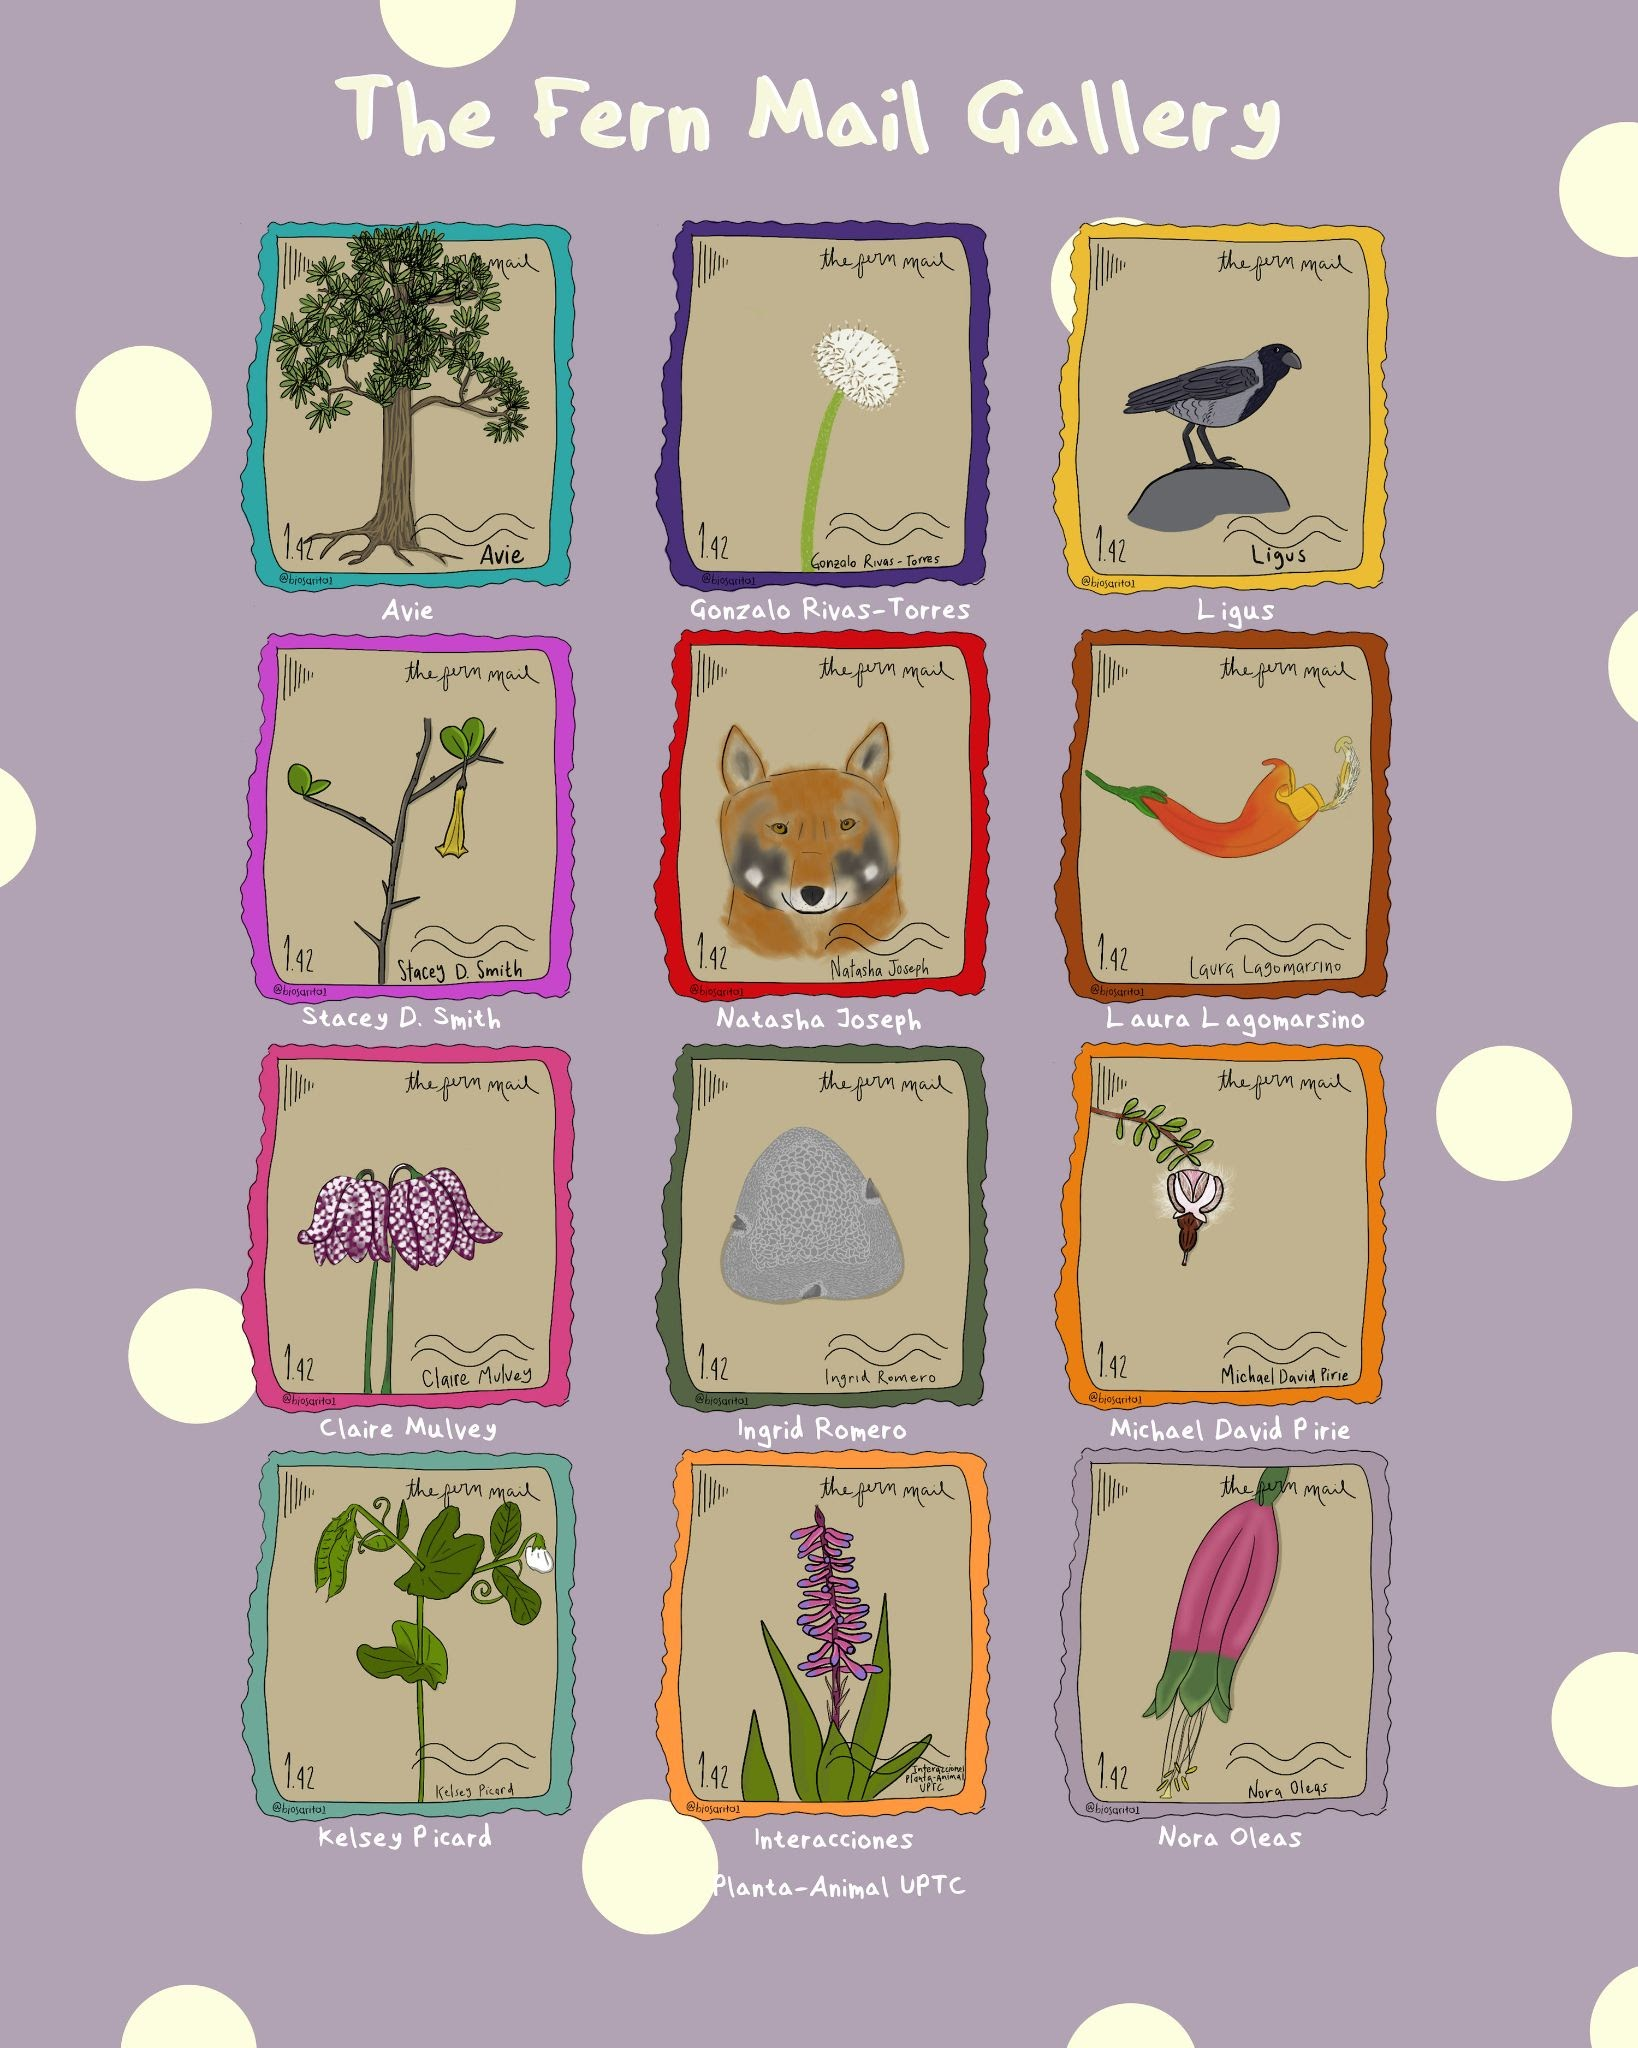 alt text: The Fern Mail Gallery by Sarita Muñoz-Gómez. On a lilac-coloured and sparsely polka-dotted background, twelve illustrated stamps are laid out in a 3 x 4 grid. From top left to bottom right: Glossopteris in a blue-green frame for Avie, Scalesia pedunculata in a dark purple frame for Gonzalo Rivas-Torres, Hooded crow in a yellow frame for Ligus, Saracha in a bright purple frame for Stacey D. Smith, Fox in a red frame for Natasha Joseph, Centropogon granulosus in a brown frame for Laura Lagomarsino, Fritillaria meleagris in a pink frame for Claire Mulvey, Pollen grain in a forest green frame for Ingrid Romero, Erica bruniades in an orange frame for Michael David Pirie, Pisum sativum in a sea foam frame for Kelsey Picard, Aechmea gamosepala in a bright orange frame for Interacciones Planta-Animal UPTC, and a pink flower bud with green petal tips and protruding yellow pistil and stamens in a light purple frame for Nora Oleas.